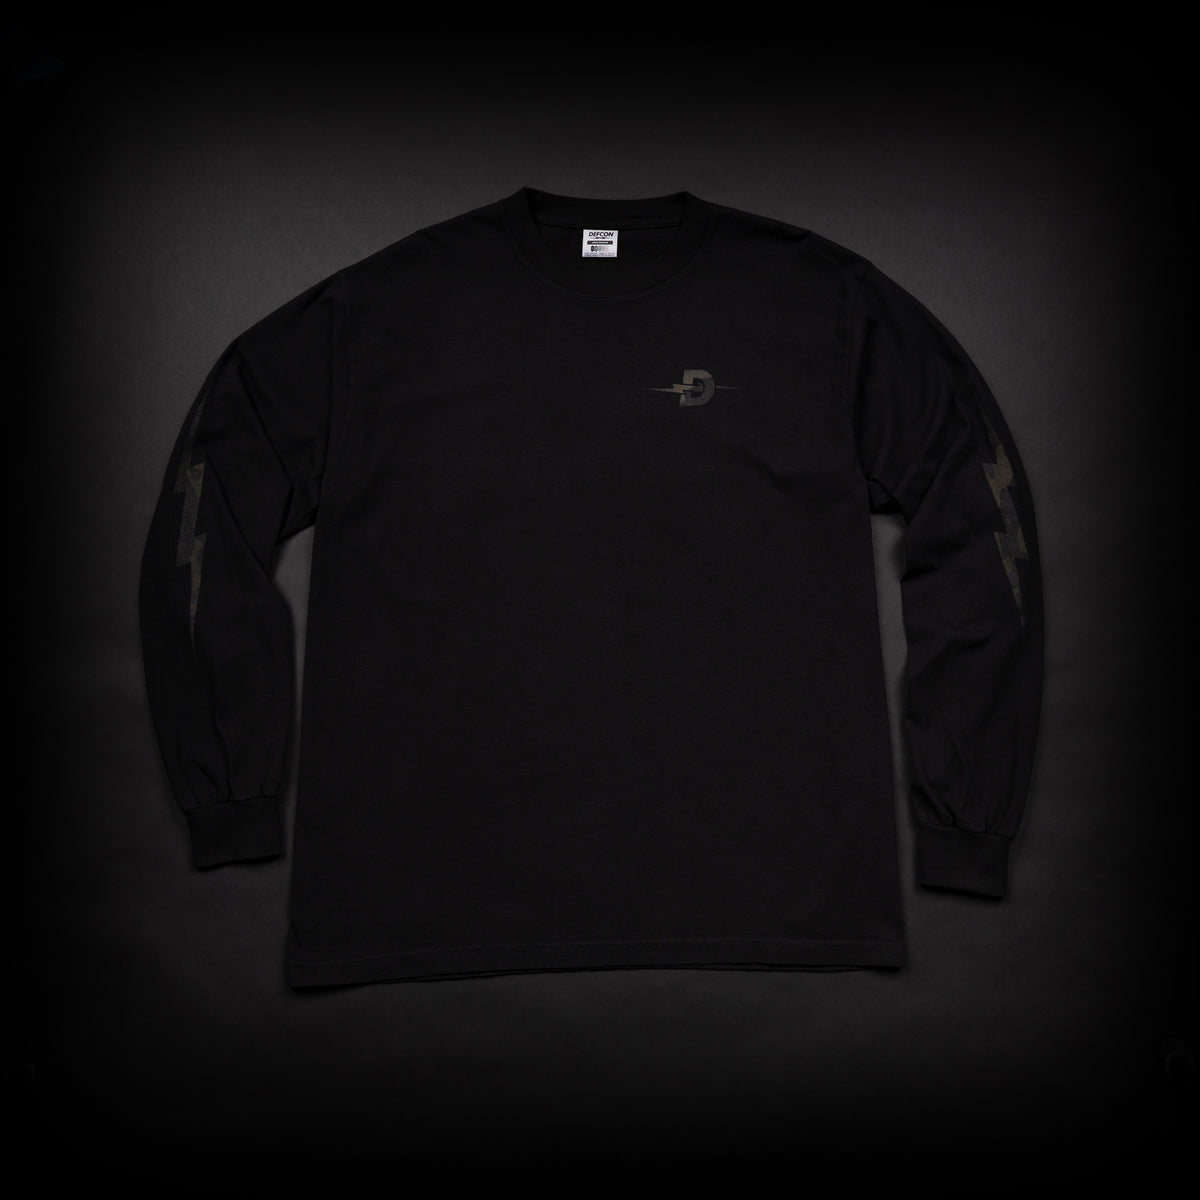 Multicam Black Long Sleeve - Black